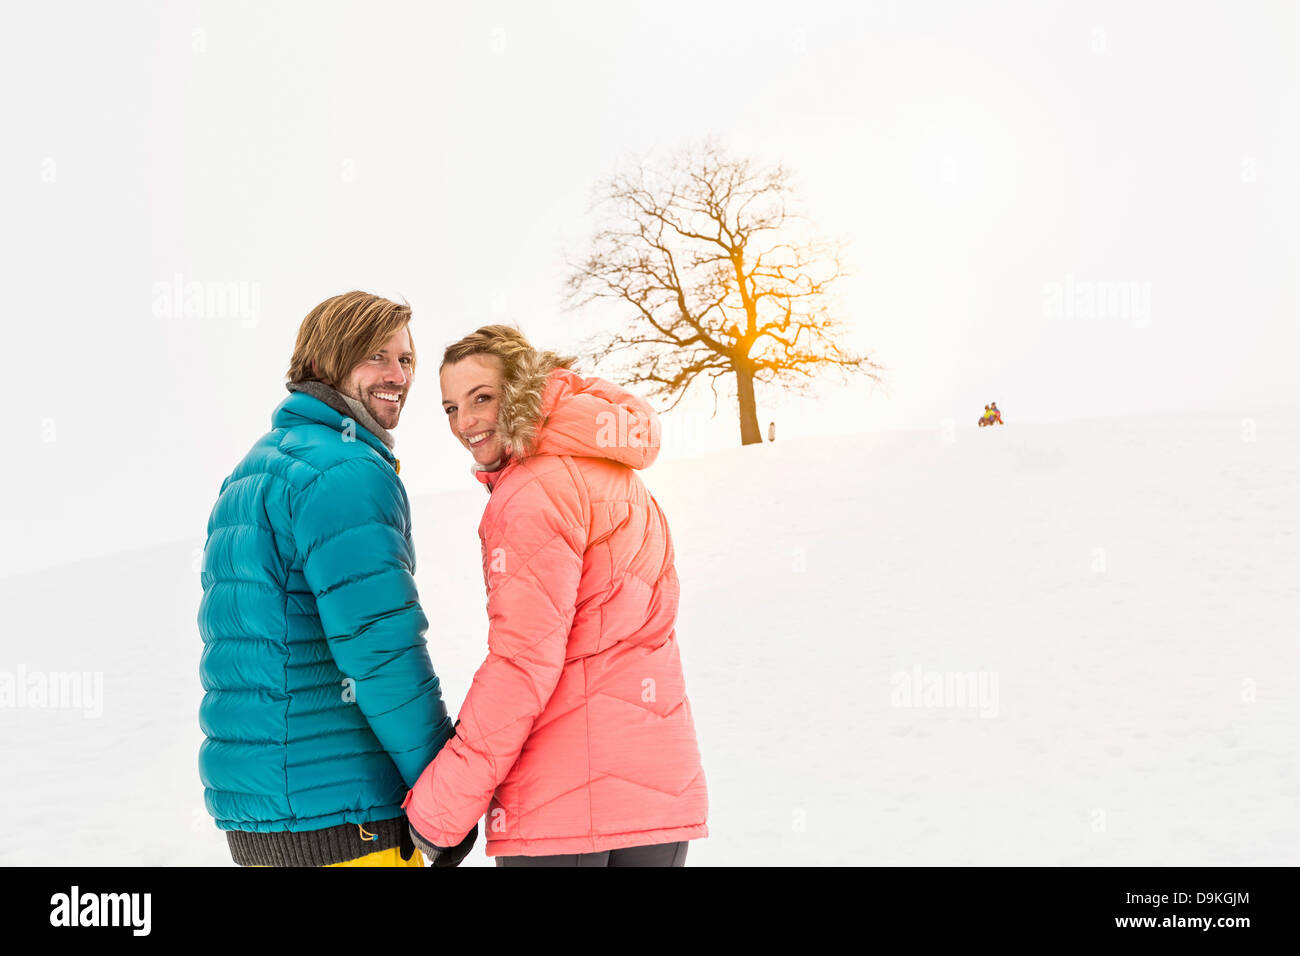 Mid adult couple walking in snow, looking over shoulder - Stock Image